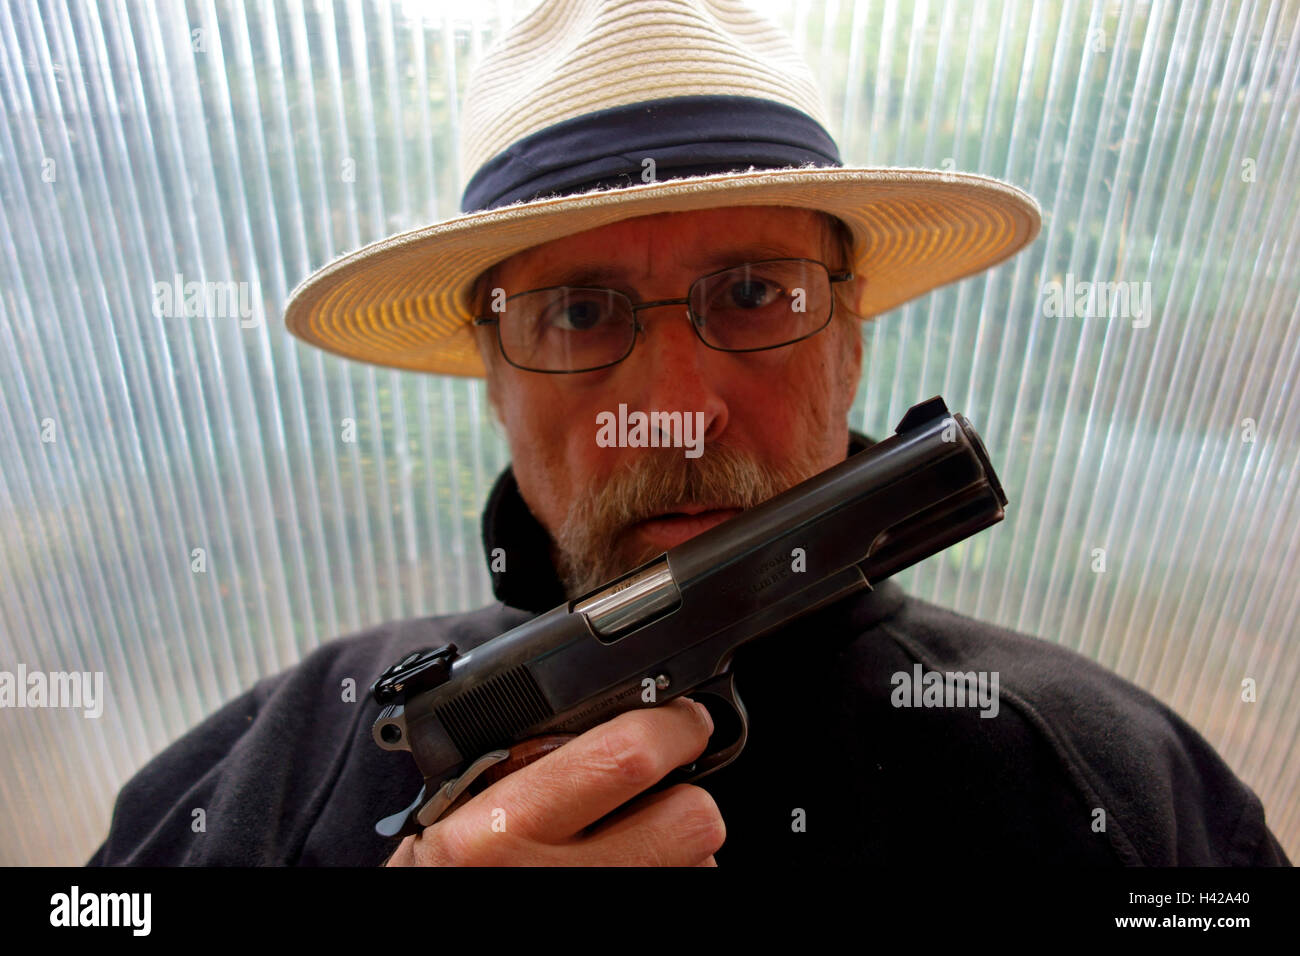 A criminal gang member gangster robber or mugger pointing a colt 45 automatic pistol - Stock Image